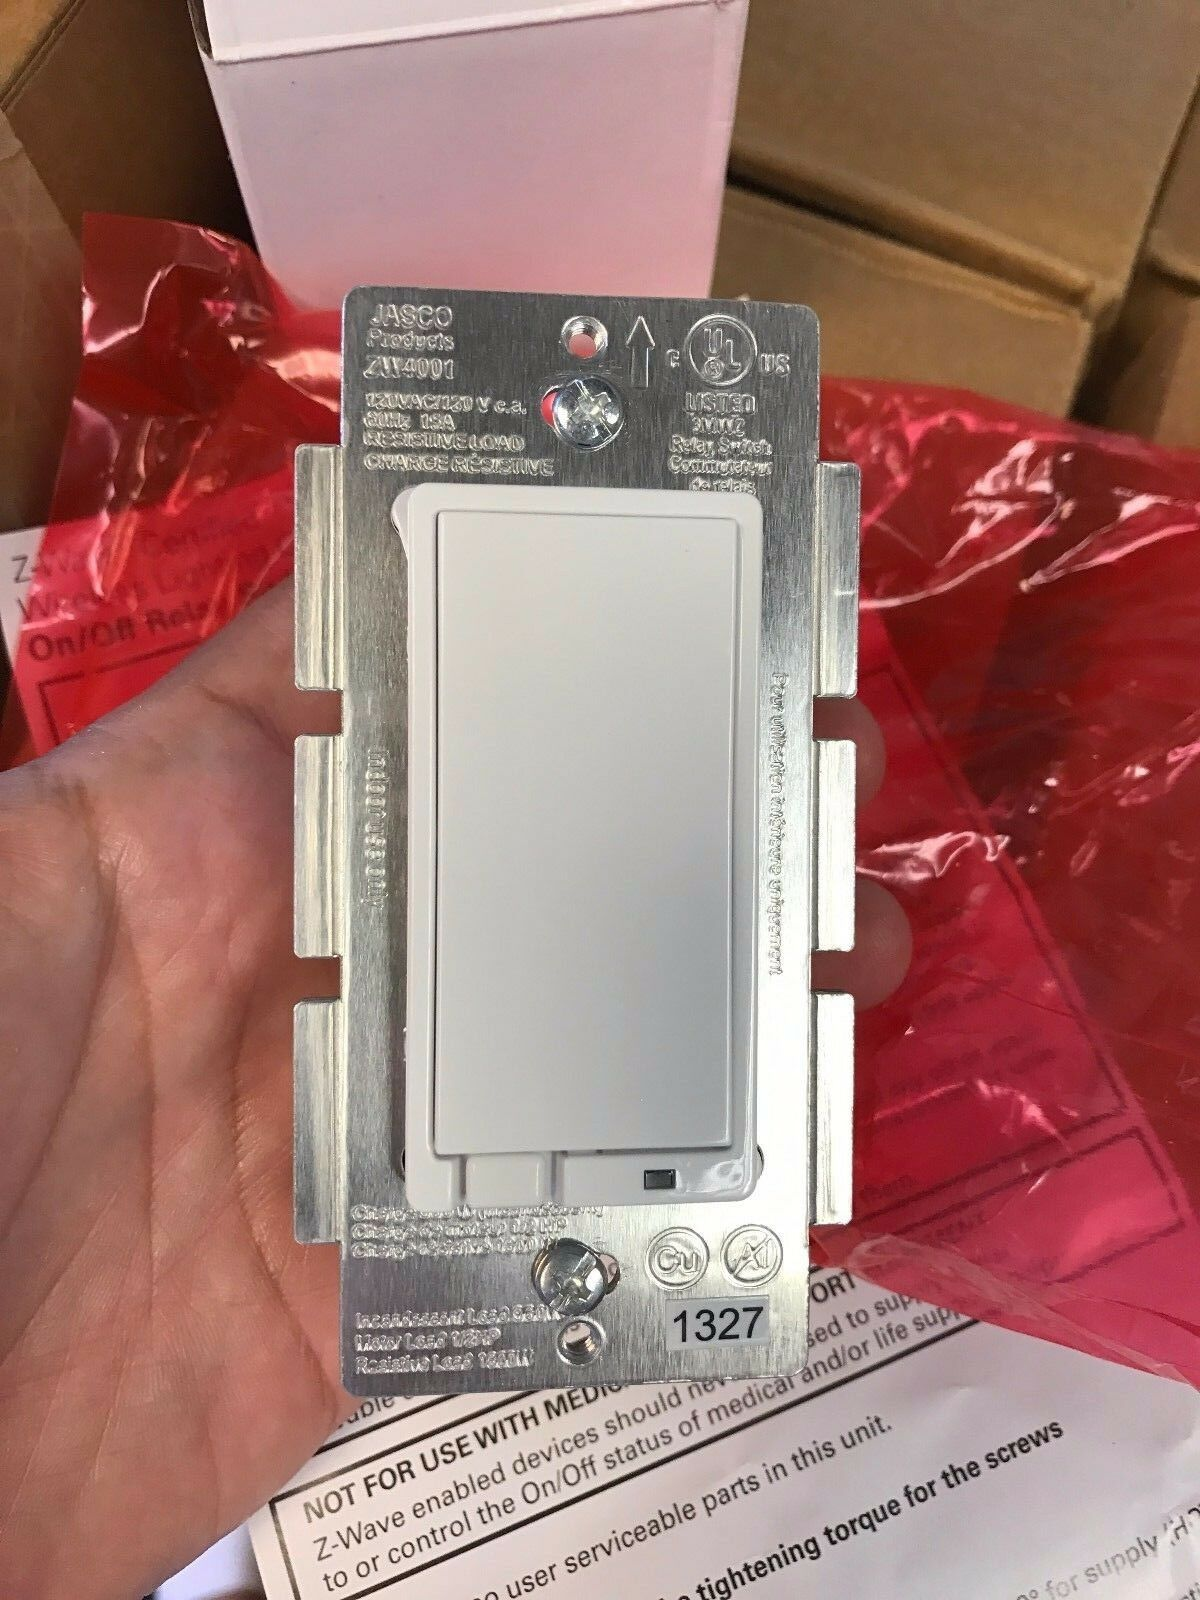 Jasco Zw4001 Z Wave Wireless Lighting Control On Off Relay Switch Replacing Existing Outlet With An X10 Sr227 Questions Homeseer White